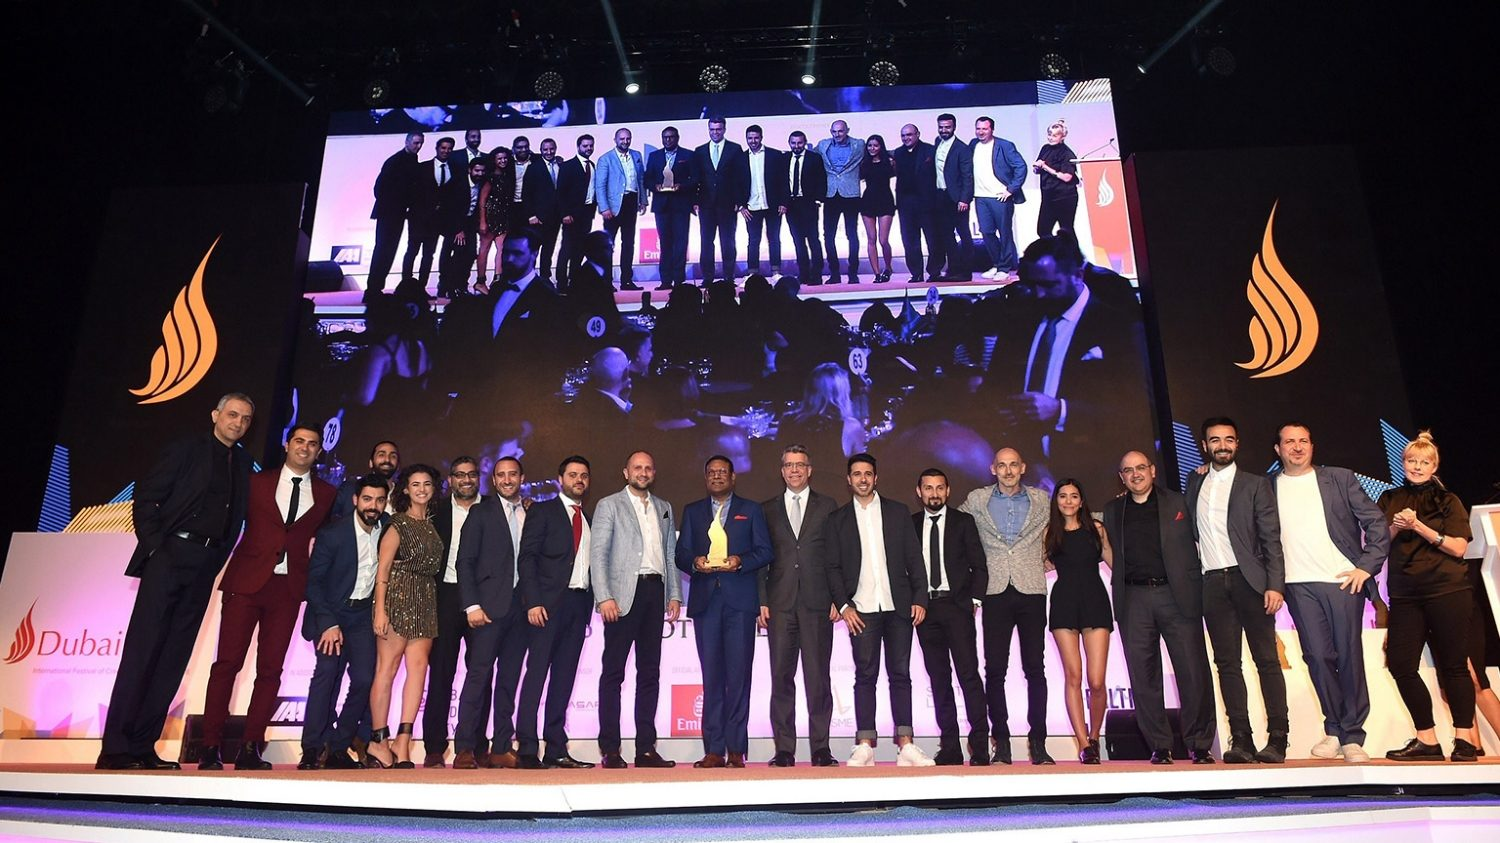 Nissan most decorated brand at Dubai Lynx with 18 awards